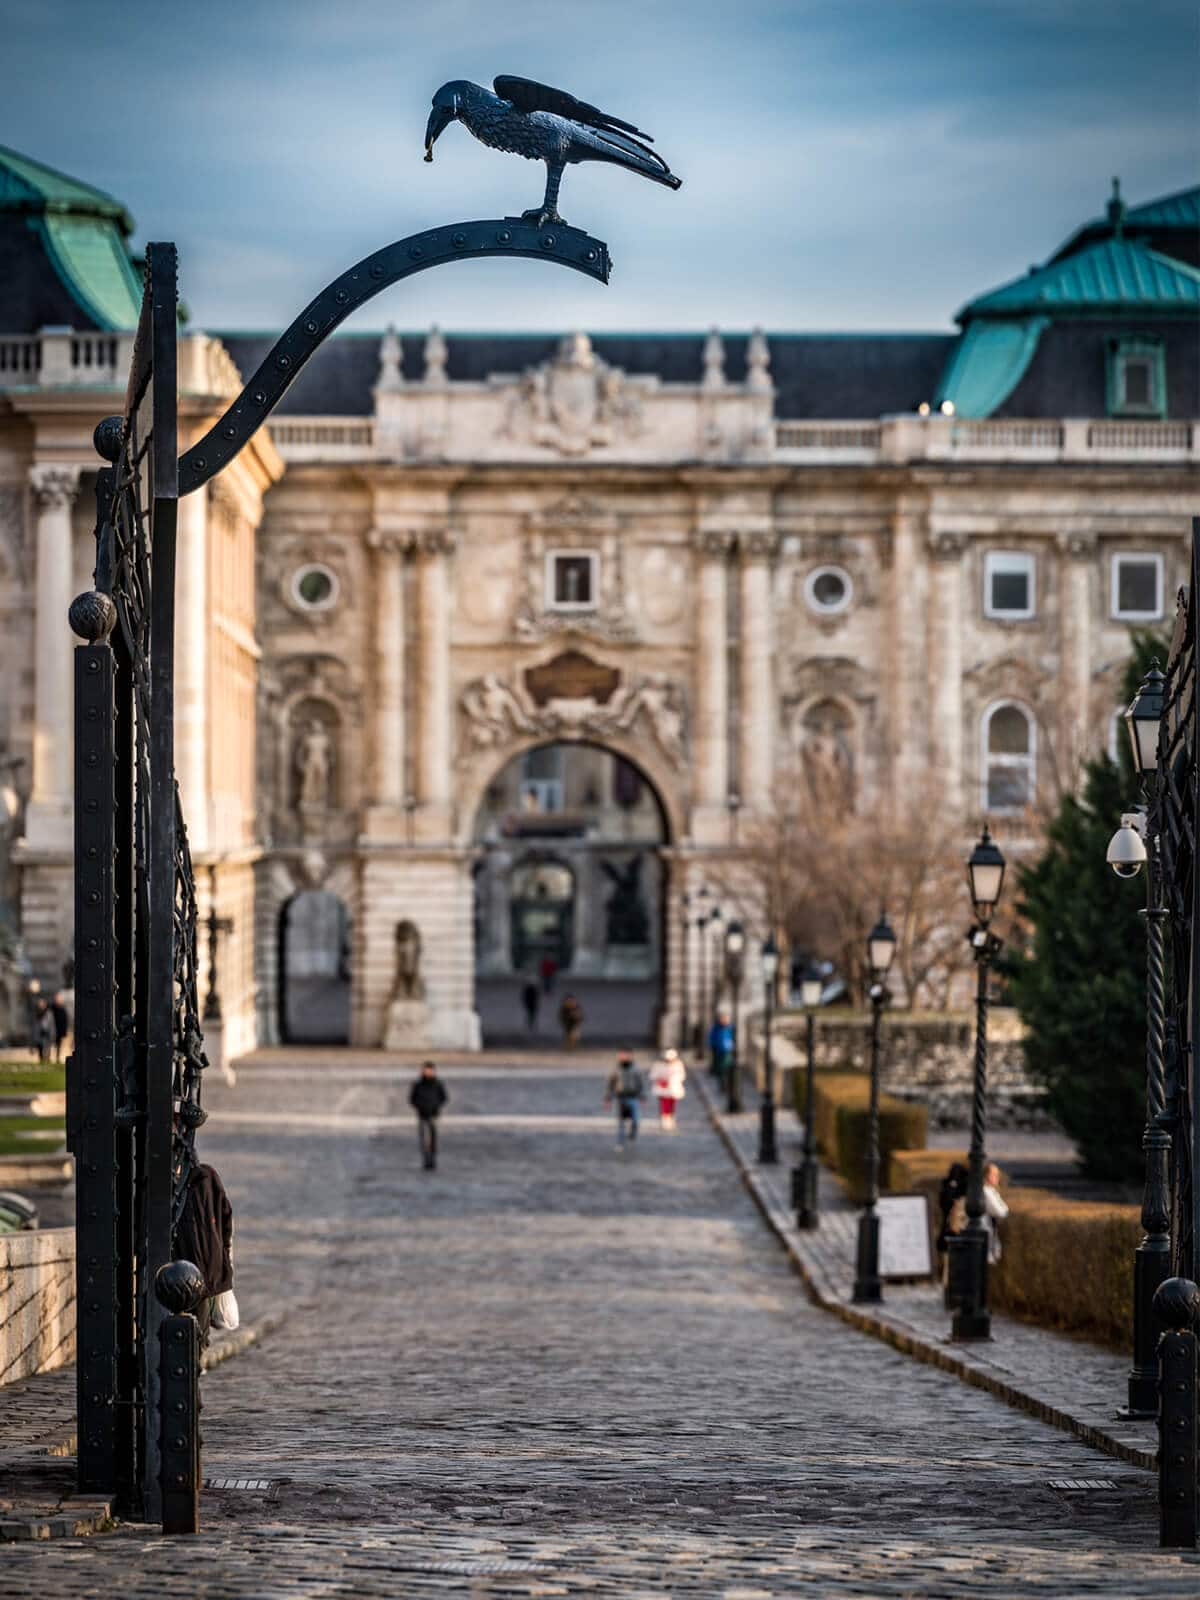 Budapest Instagram photo guide - Raven Gate at Buda Castle